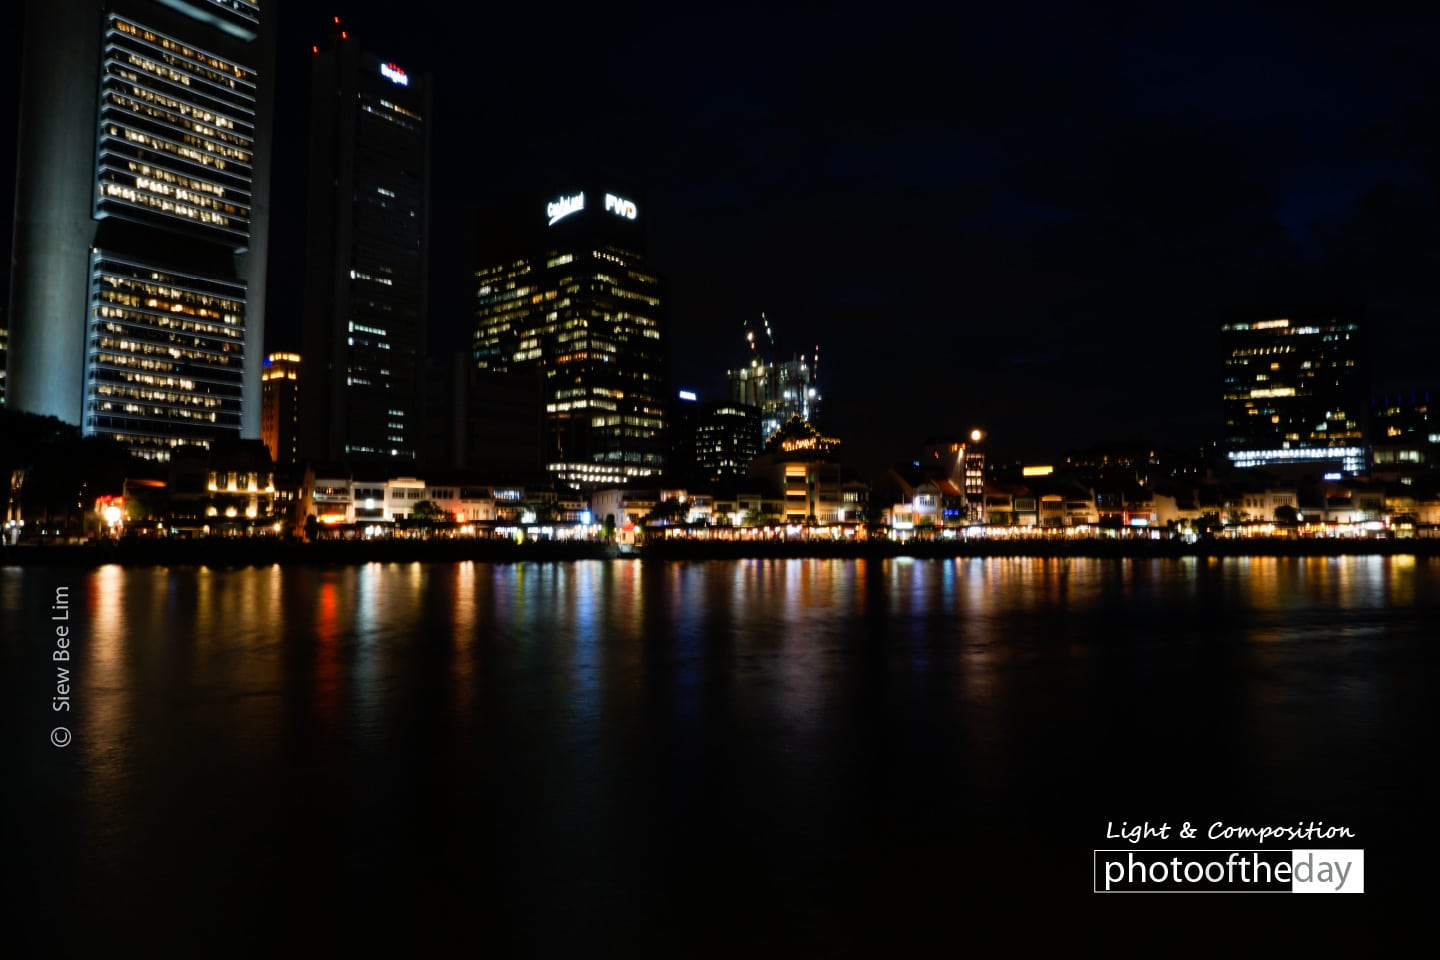 Boat Quay, by Siew Bee Lim